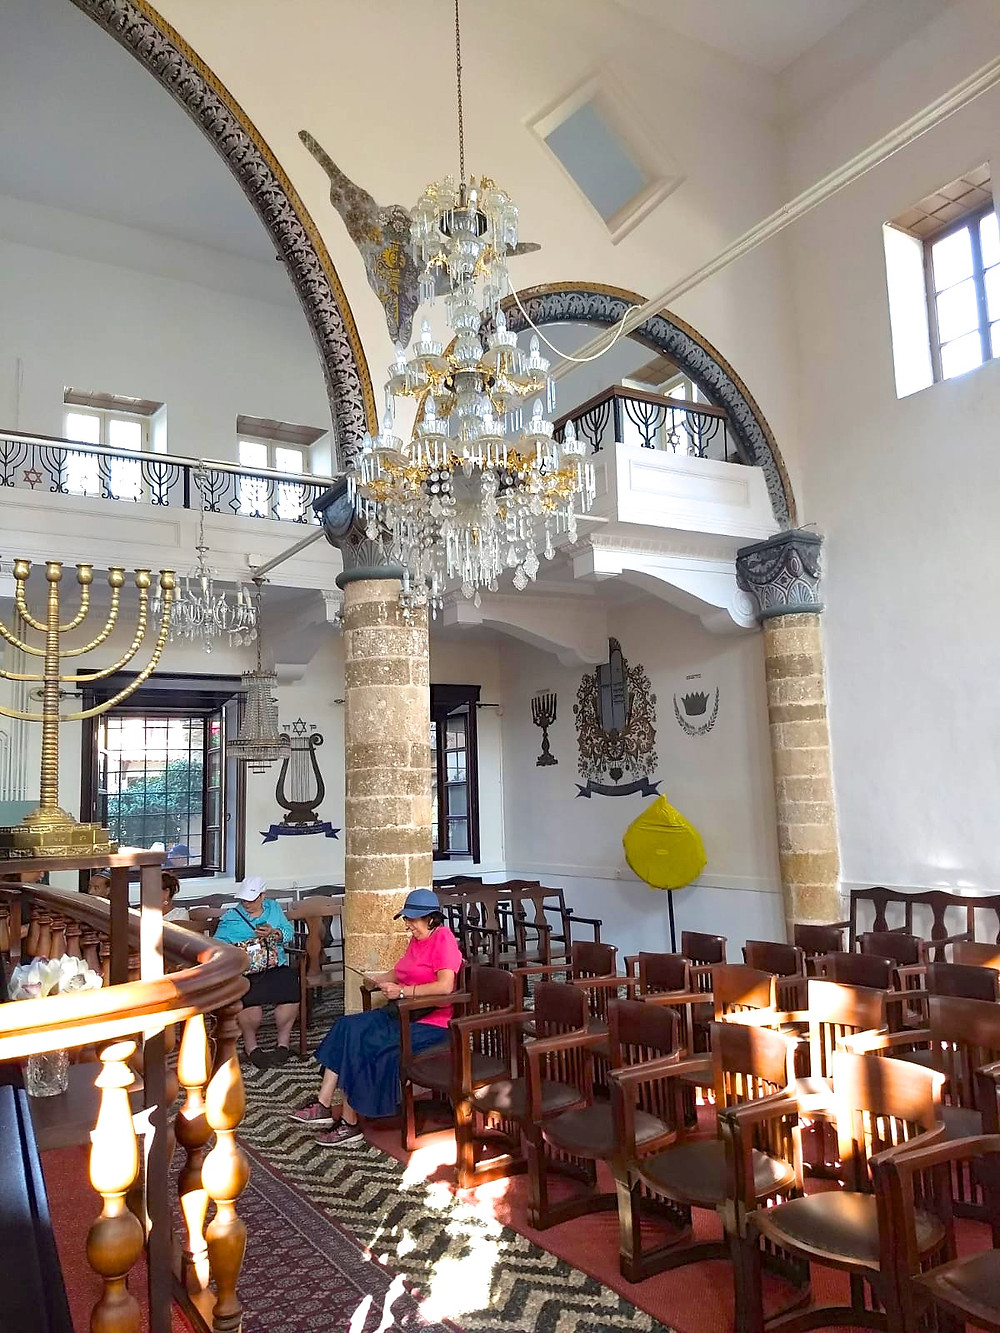 The Kal Kadosh Synagogue is one of the main touristic destinations on the island of Rhodes.